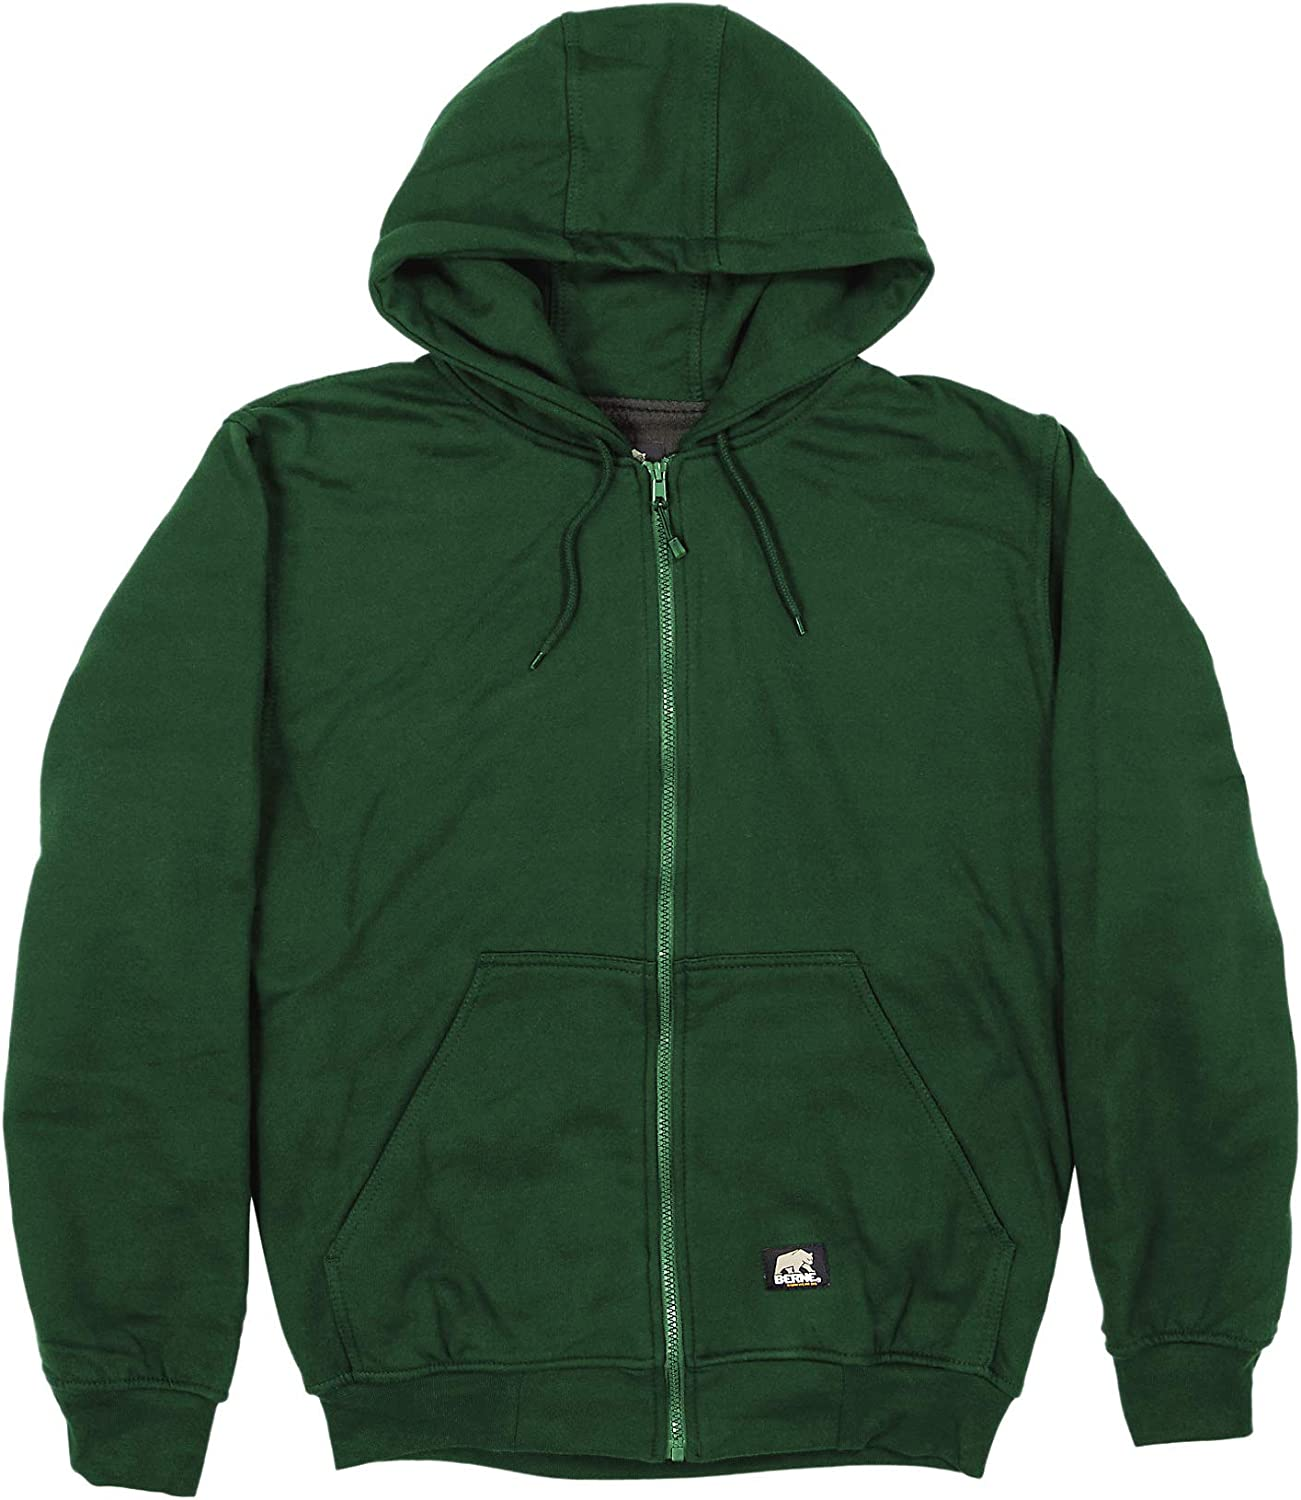 Berne Men's Thermal Lined Hooded Sweatshirt, 2X-Large Tall, Green